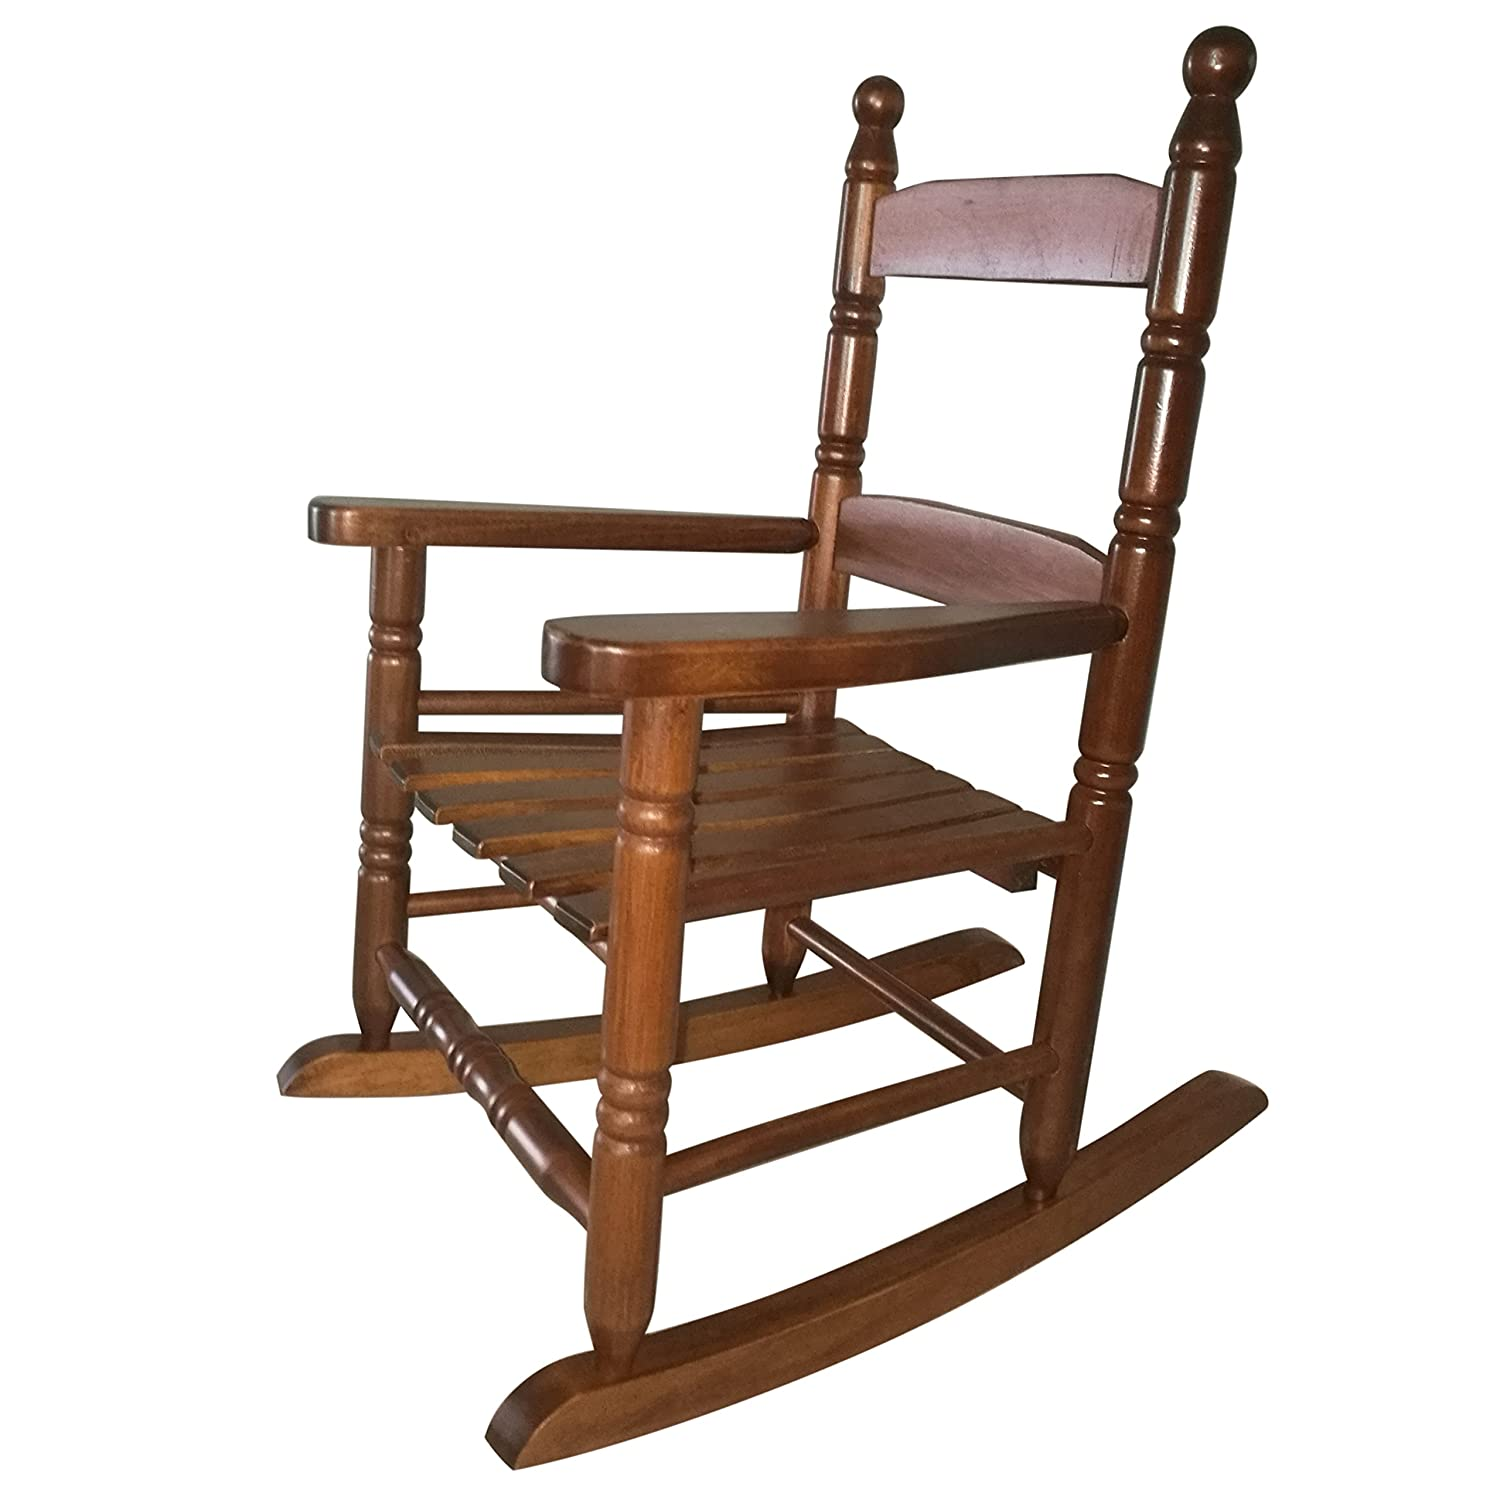 Incredible Rockingrocker K10Nt Natural Wood Childs Rocking Chair Porch Rocker Indoor Or Outdoor Suitable For 1 To 4 Years Old Gamerscity Chair Design For Home Gamerscityorg